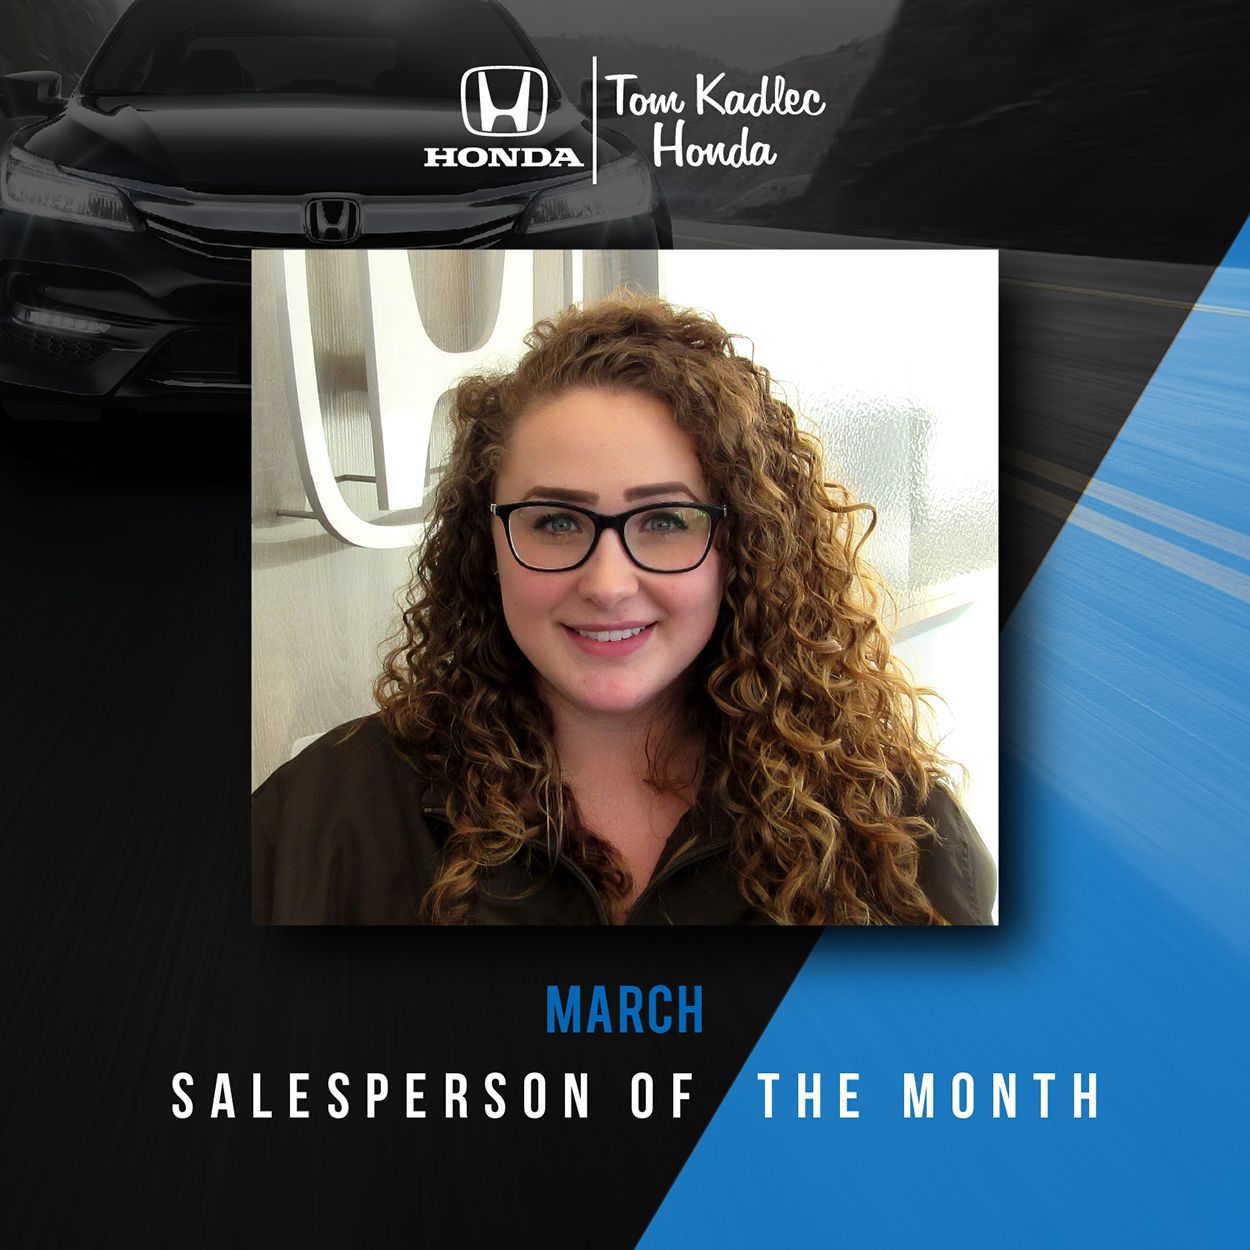 A special congratulations to our March Salesperson of the